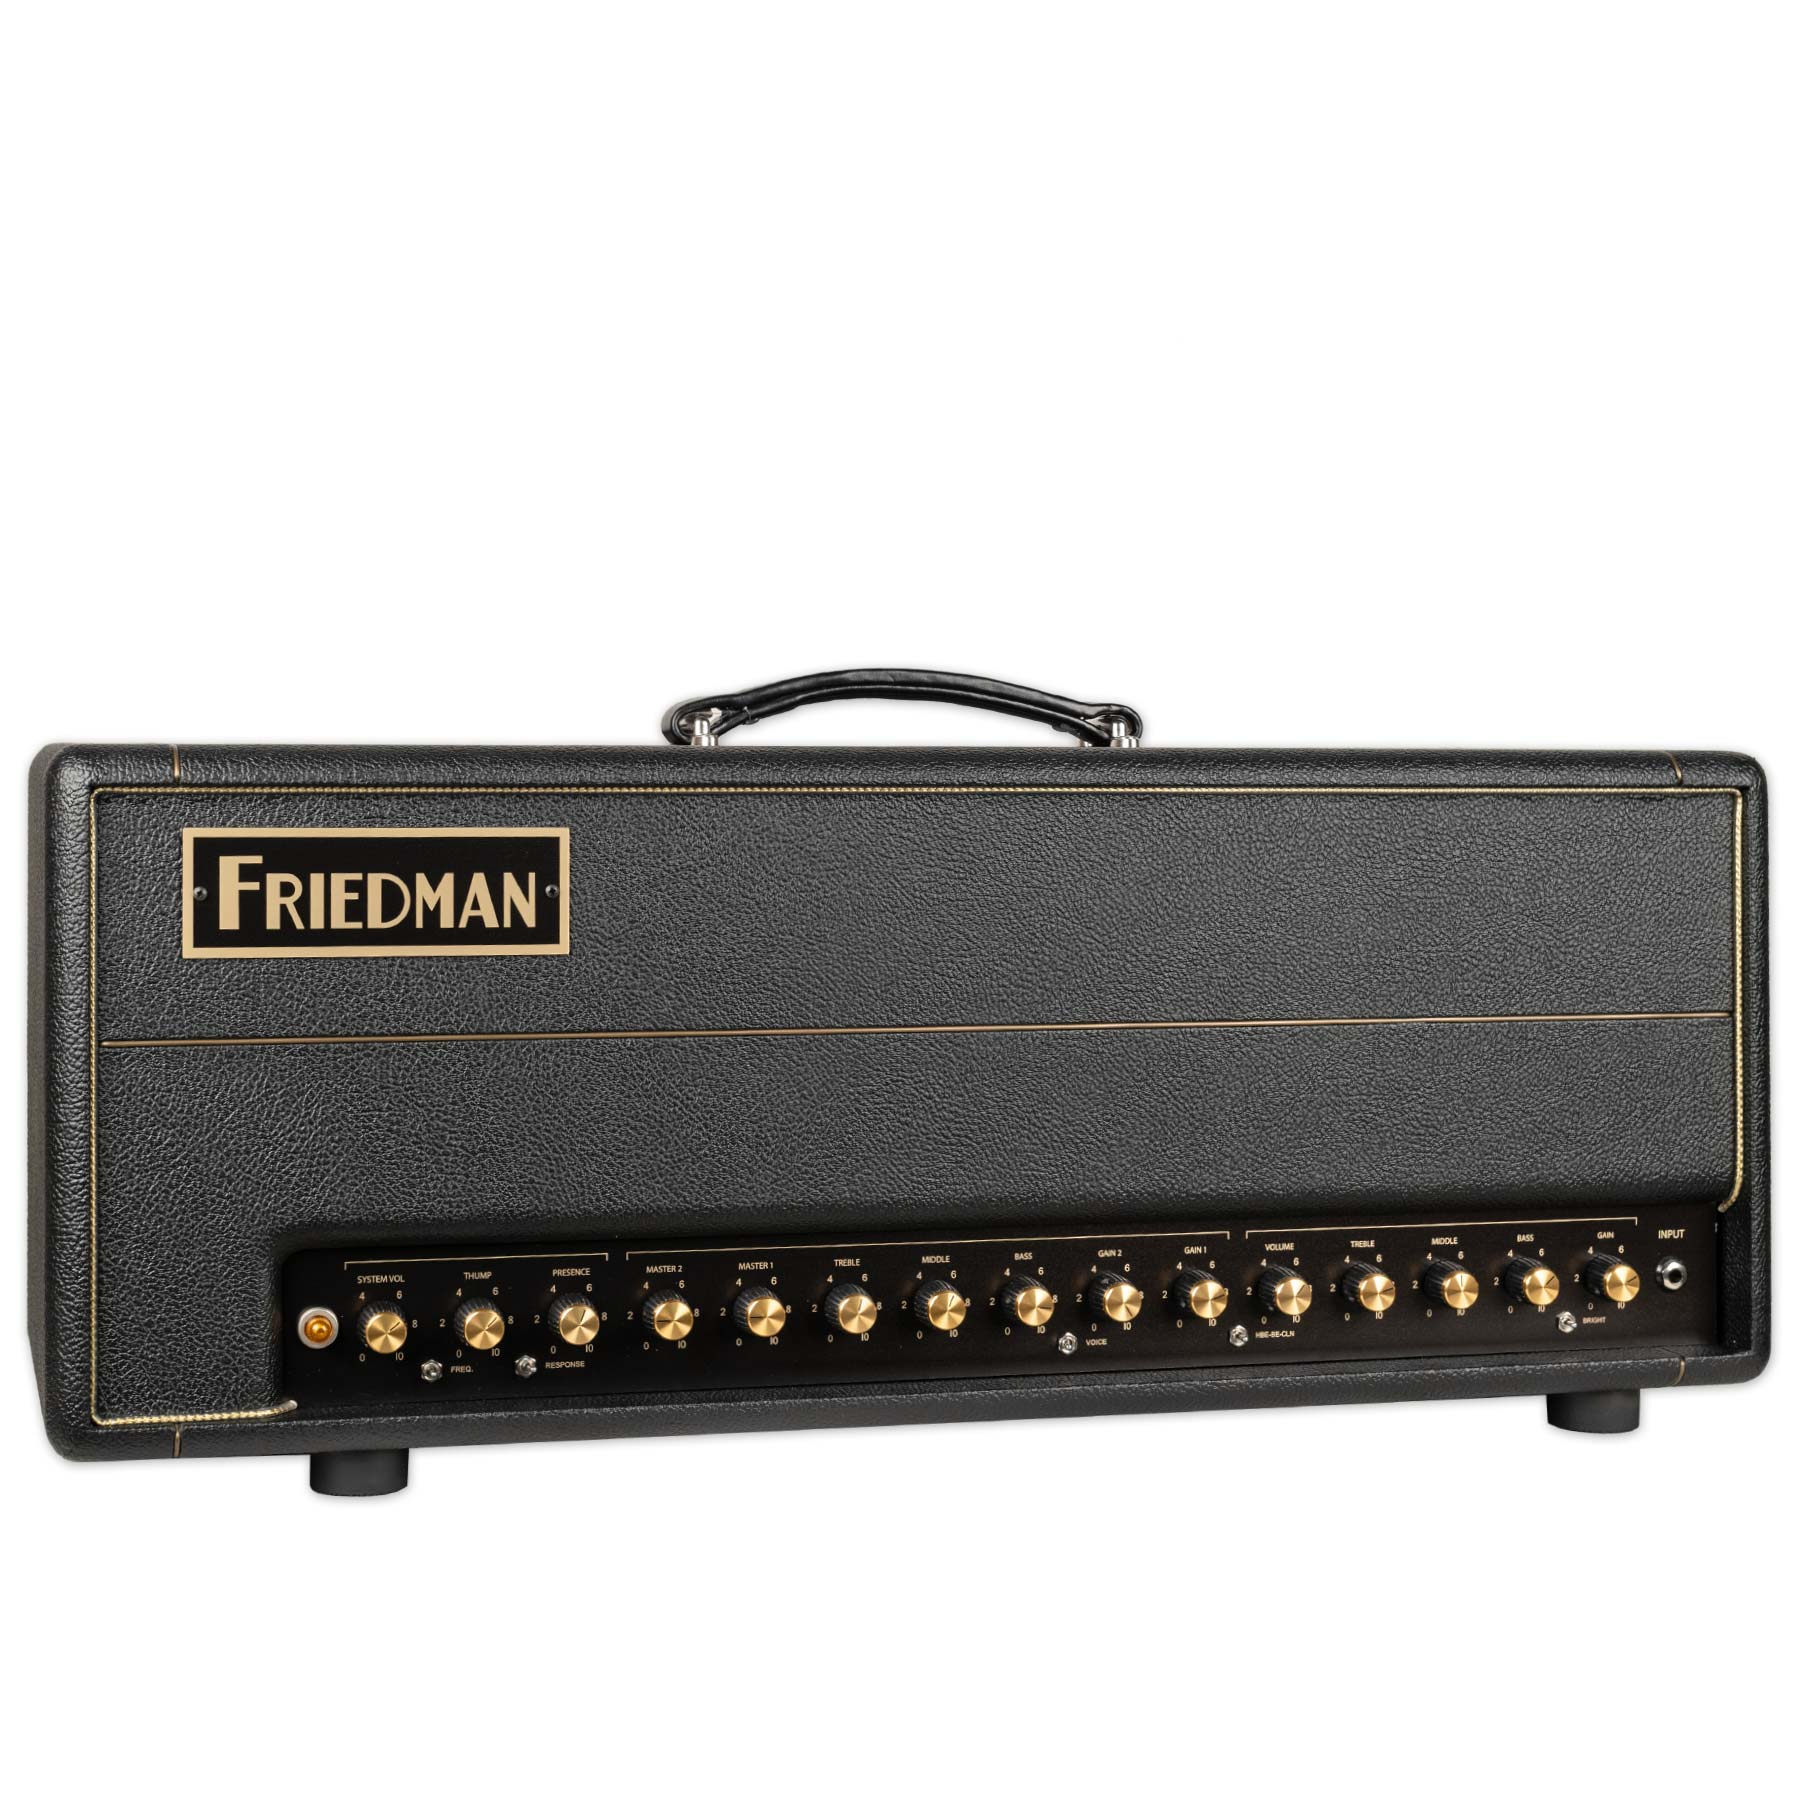 FRIEDMAN BE-100 DELUXE 3-CHANNEL GUITAR AMPLIFIER